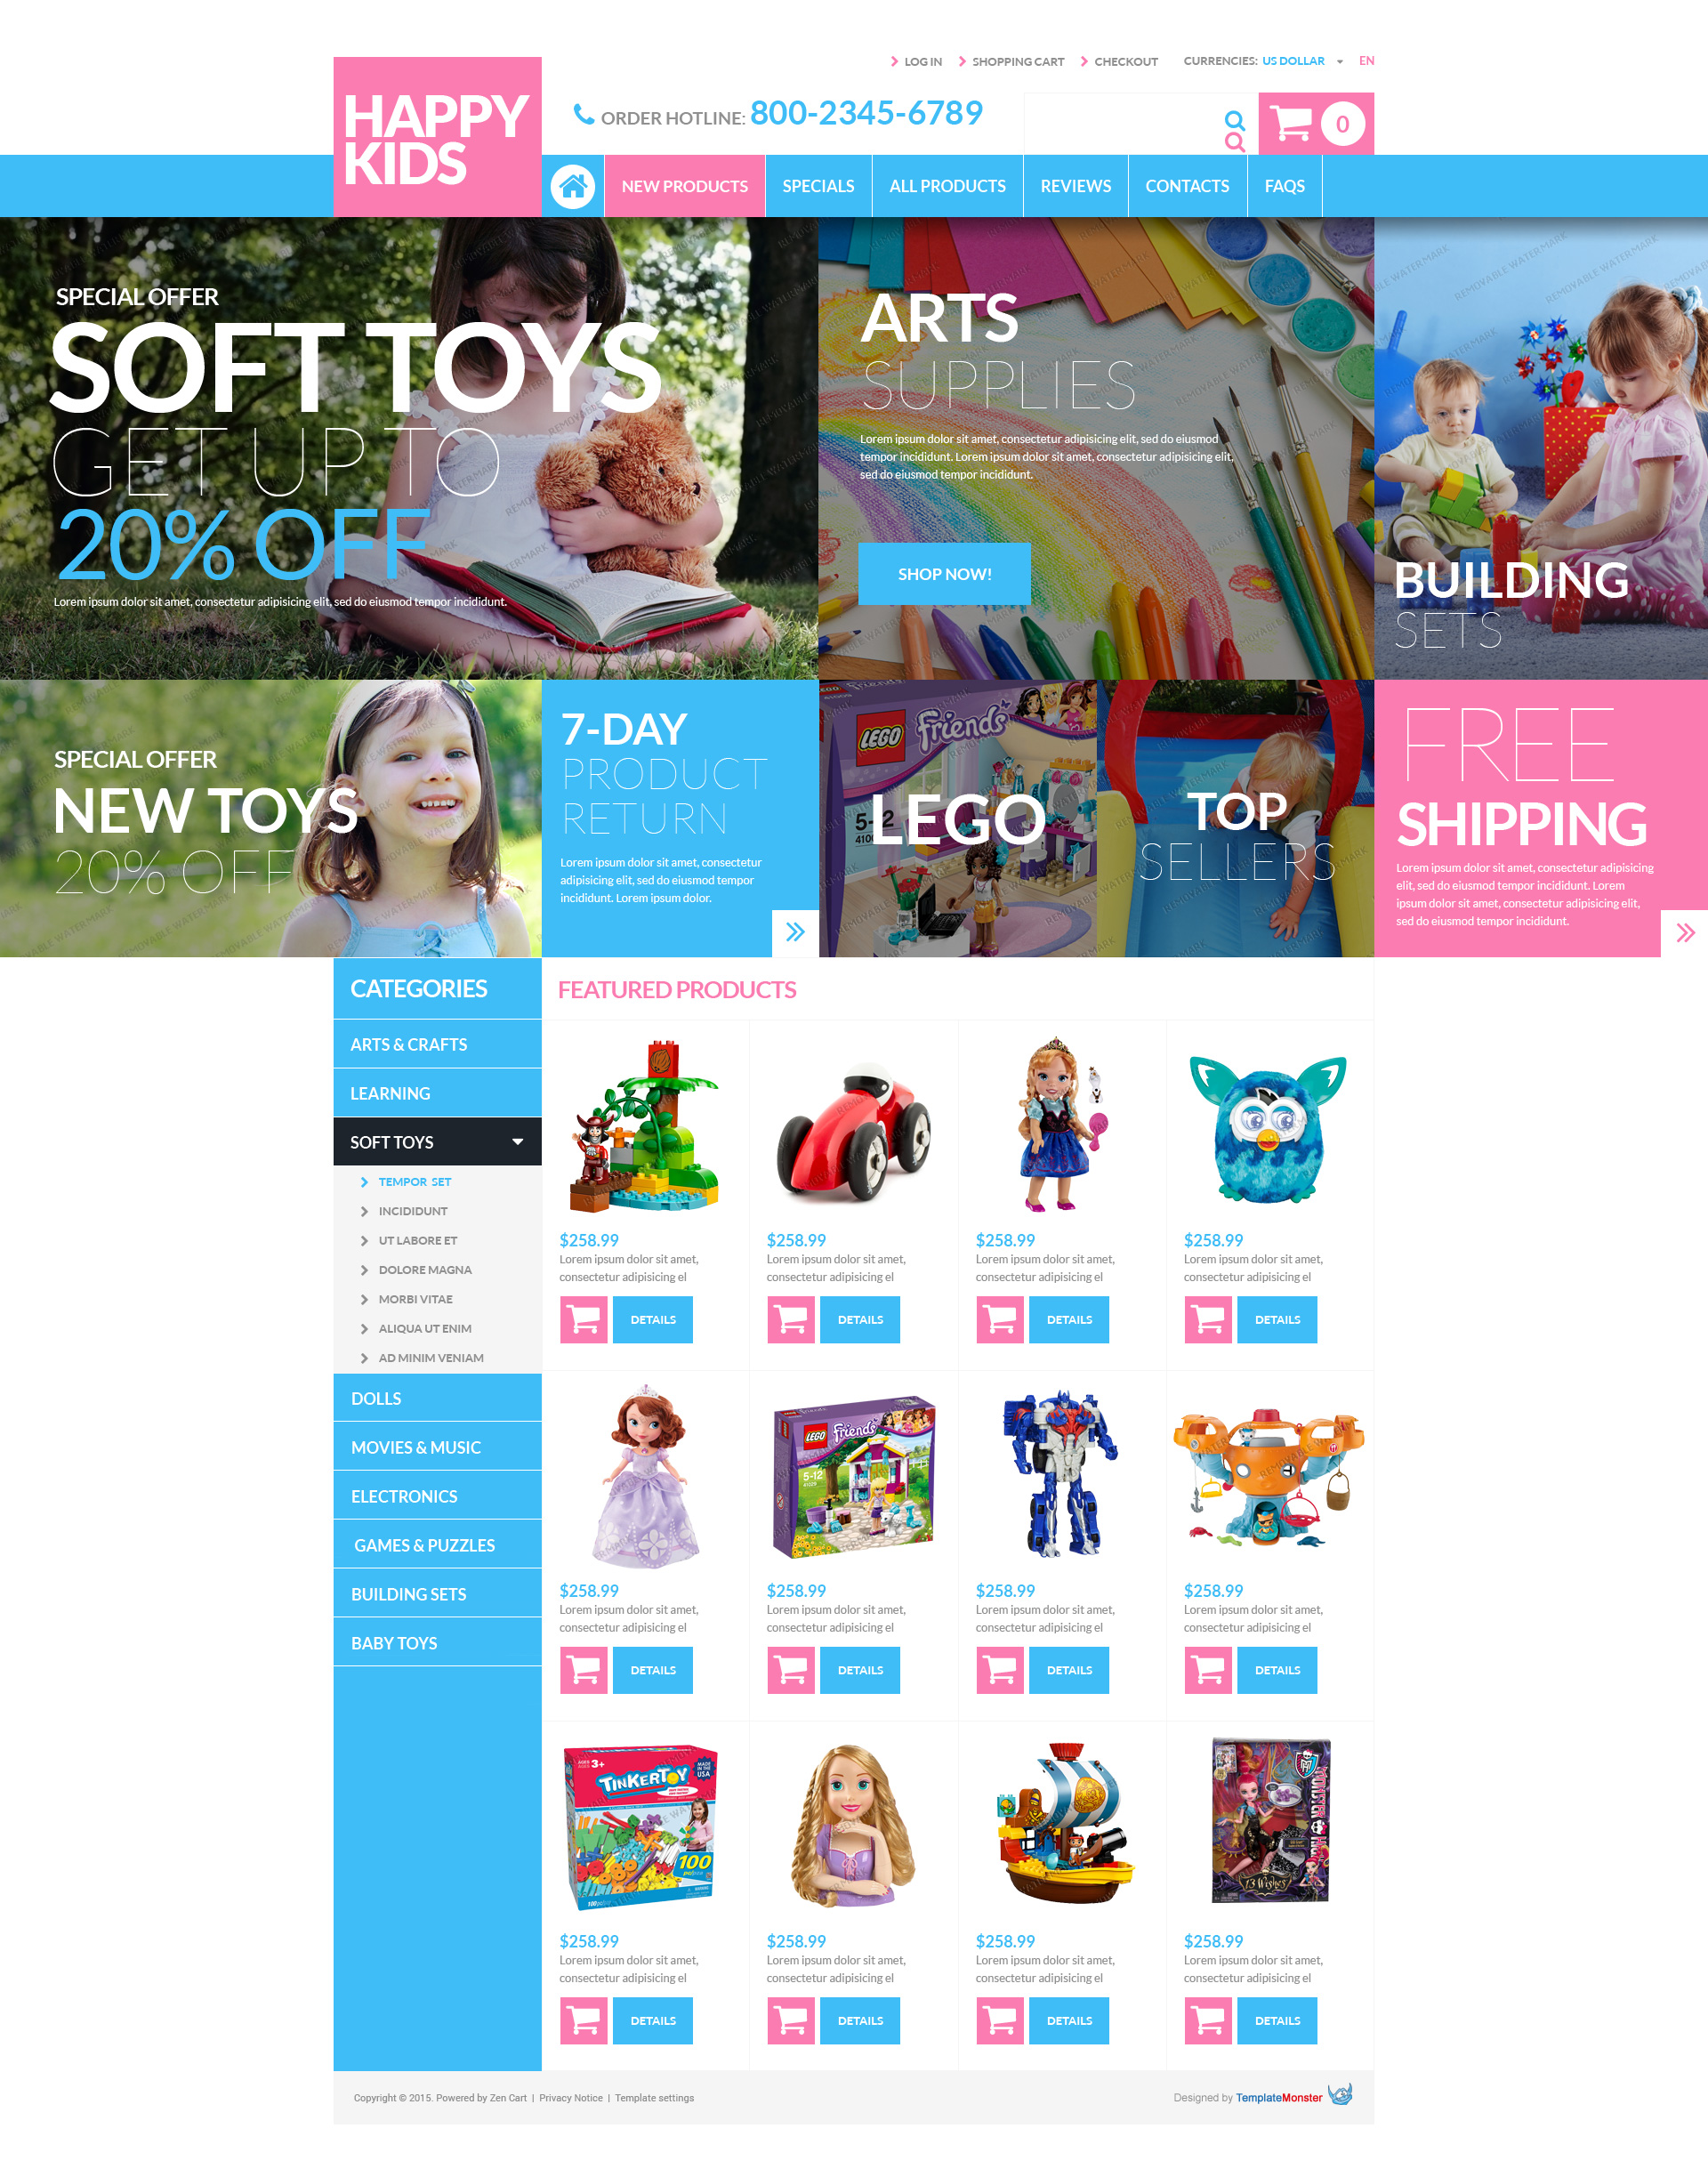 The Toy Toys Store Zen Cart Design 53479, one of the best ZenCart templates of its kind (entertainment, most popular), also known as toy toys store ZenCart template, baby online shop ZenCart template, gift ZenCart template, toy ZenCart template, exclusive ZenCart template, children ZenCart template, animals ZenCart template, wildlife ZenCart template, party ZenCart template, favors ZenCart template, cool ZenCart template, vehicle ZenCart template, outdoor ZenCart template, developmental ZenCart template, car ZenCart template, doll ZenCart template, game ZenCart template, dog ZenCart template, teddy ZenCart template, bear ZenCart template, roadster ZenCart template, frog ZenCart template, mover ZenCart template, table ZenCart template, ball ZenCart template, puzzle ZenCart template, bus ZenCart template, plush ZenCart template, battleship ZenCart template, air ZenCart template, chair ZenCart template, presents ZenCart template, snowmen ZenCart template, delivery and related with toy toys store, baby online shop, gift, toy, exclusive, children, animals, wildlife, party, favors, cool, vehicle, outdoor, developmental, car, doll, game, dog, teddy, bear, roadster, frog, mover, table, ball, puzzle, bus, plush, battleship, air, chair, presents, snowmen, delivery, etc.